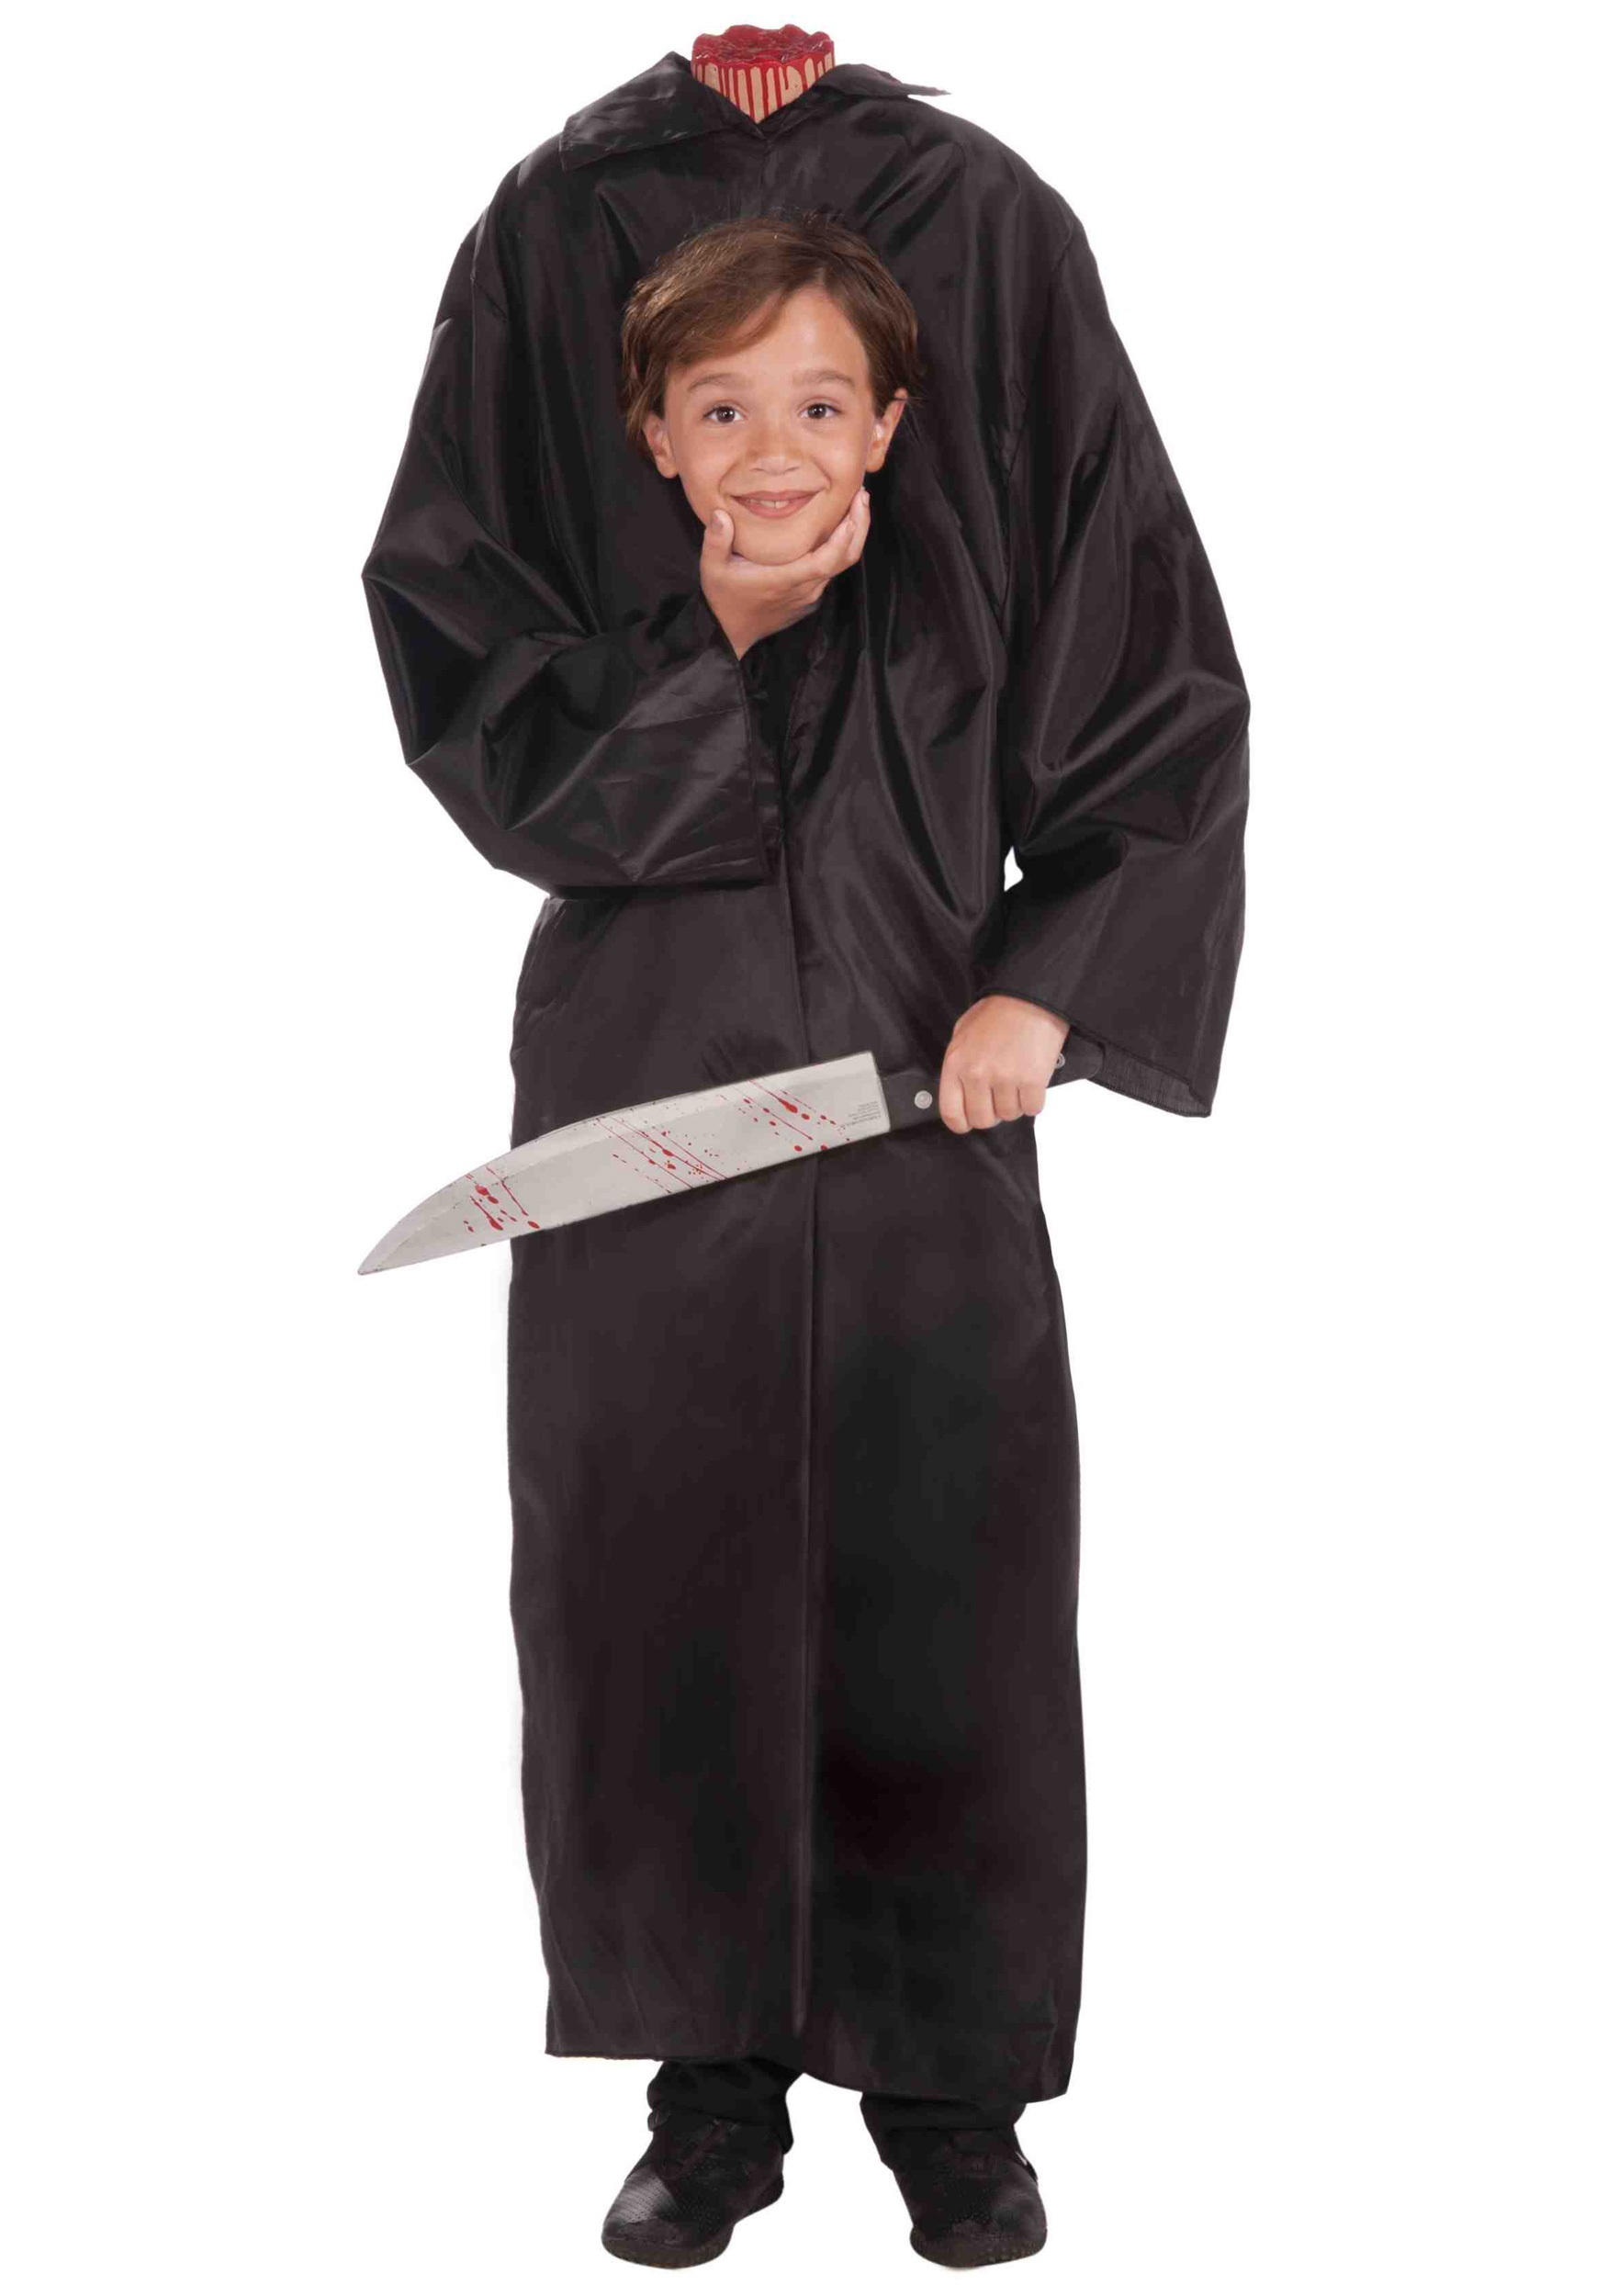 Halloween Costumes For Kids Boys 10 And Up.Child Headless Boy Costume